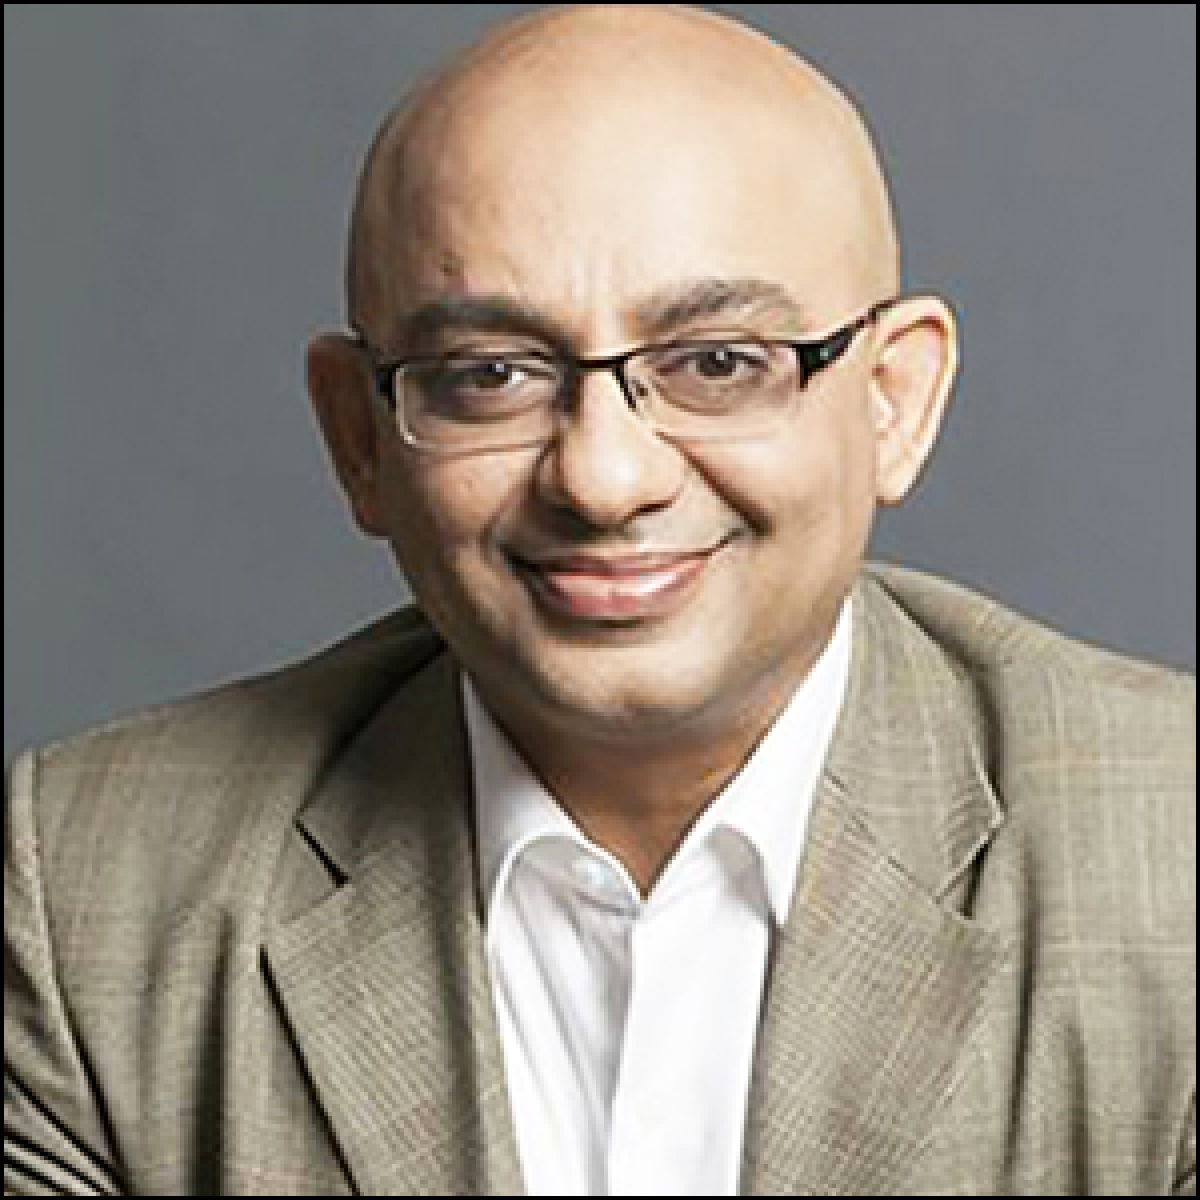 Sudeep Gohil moves on from Publicis India